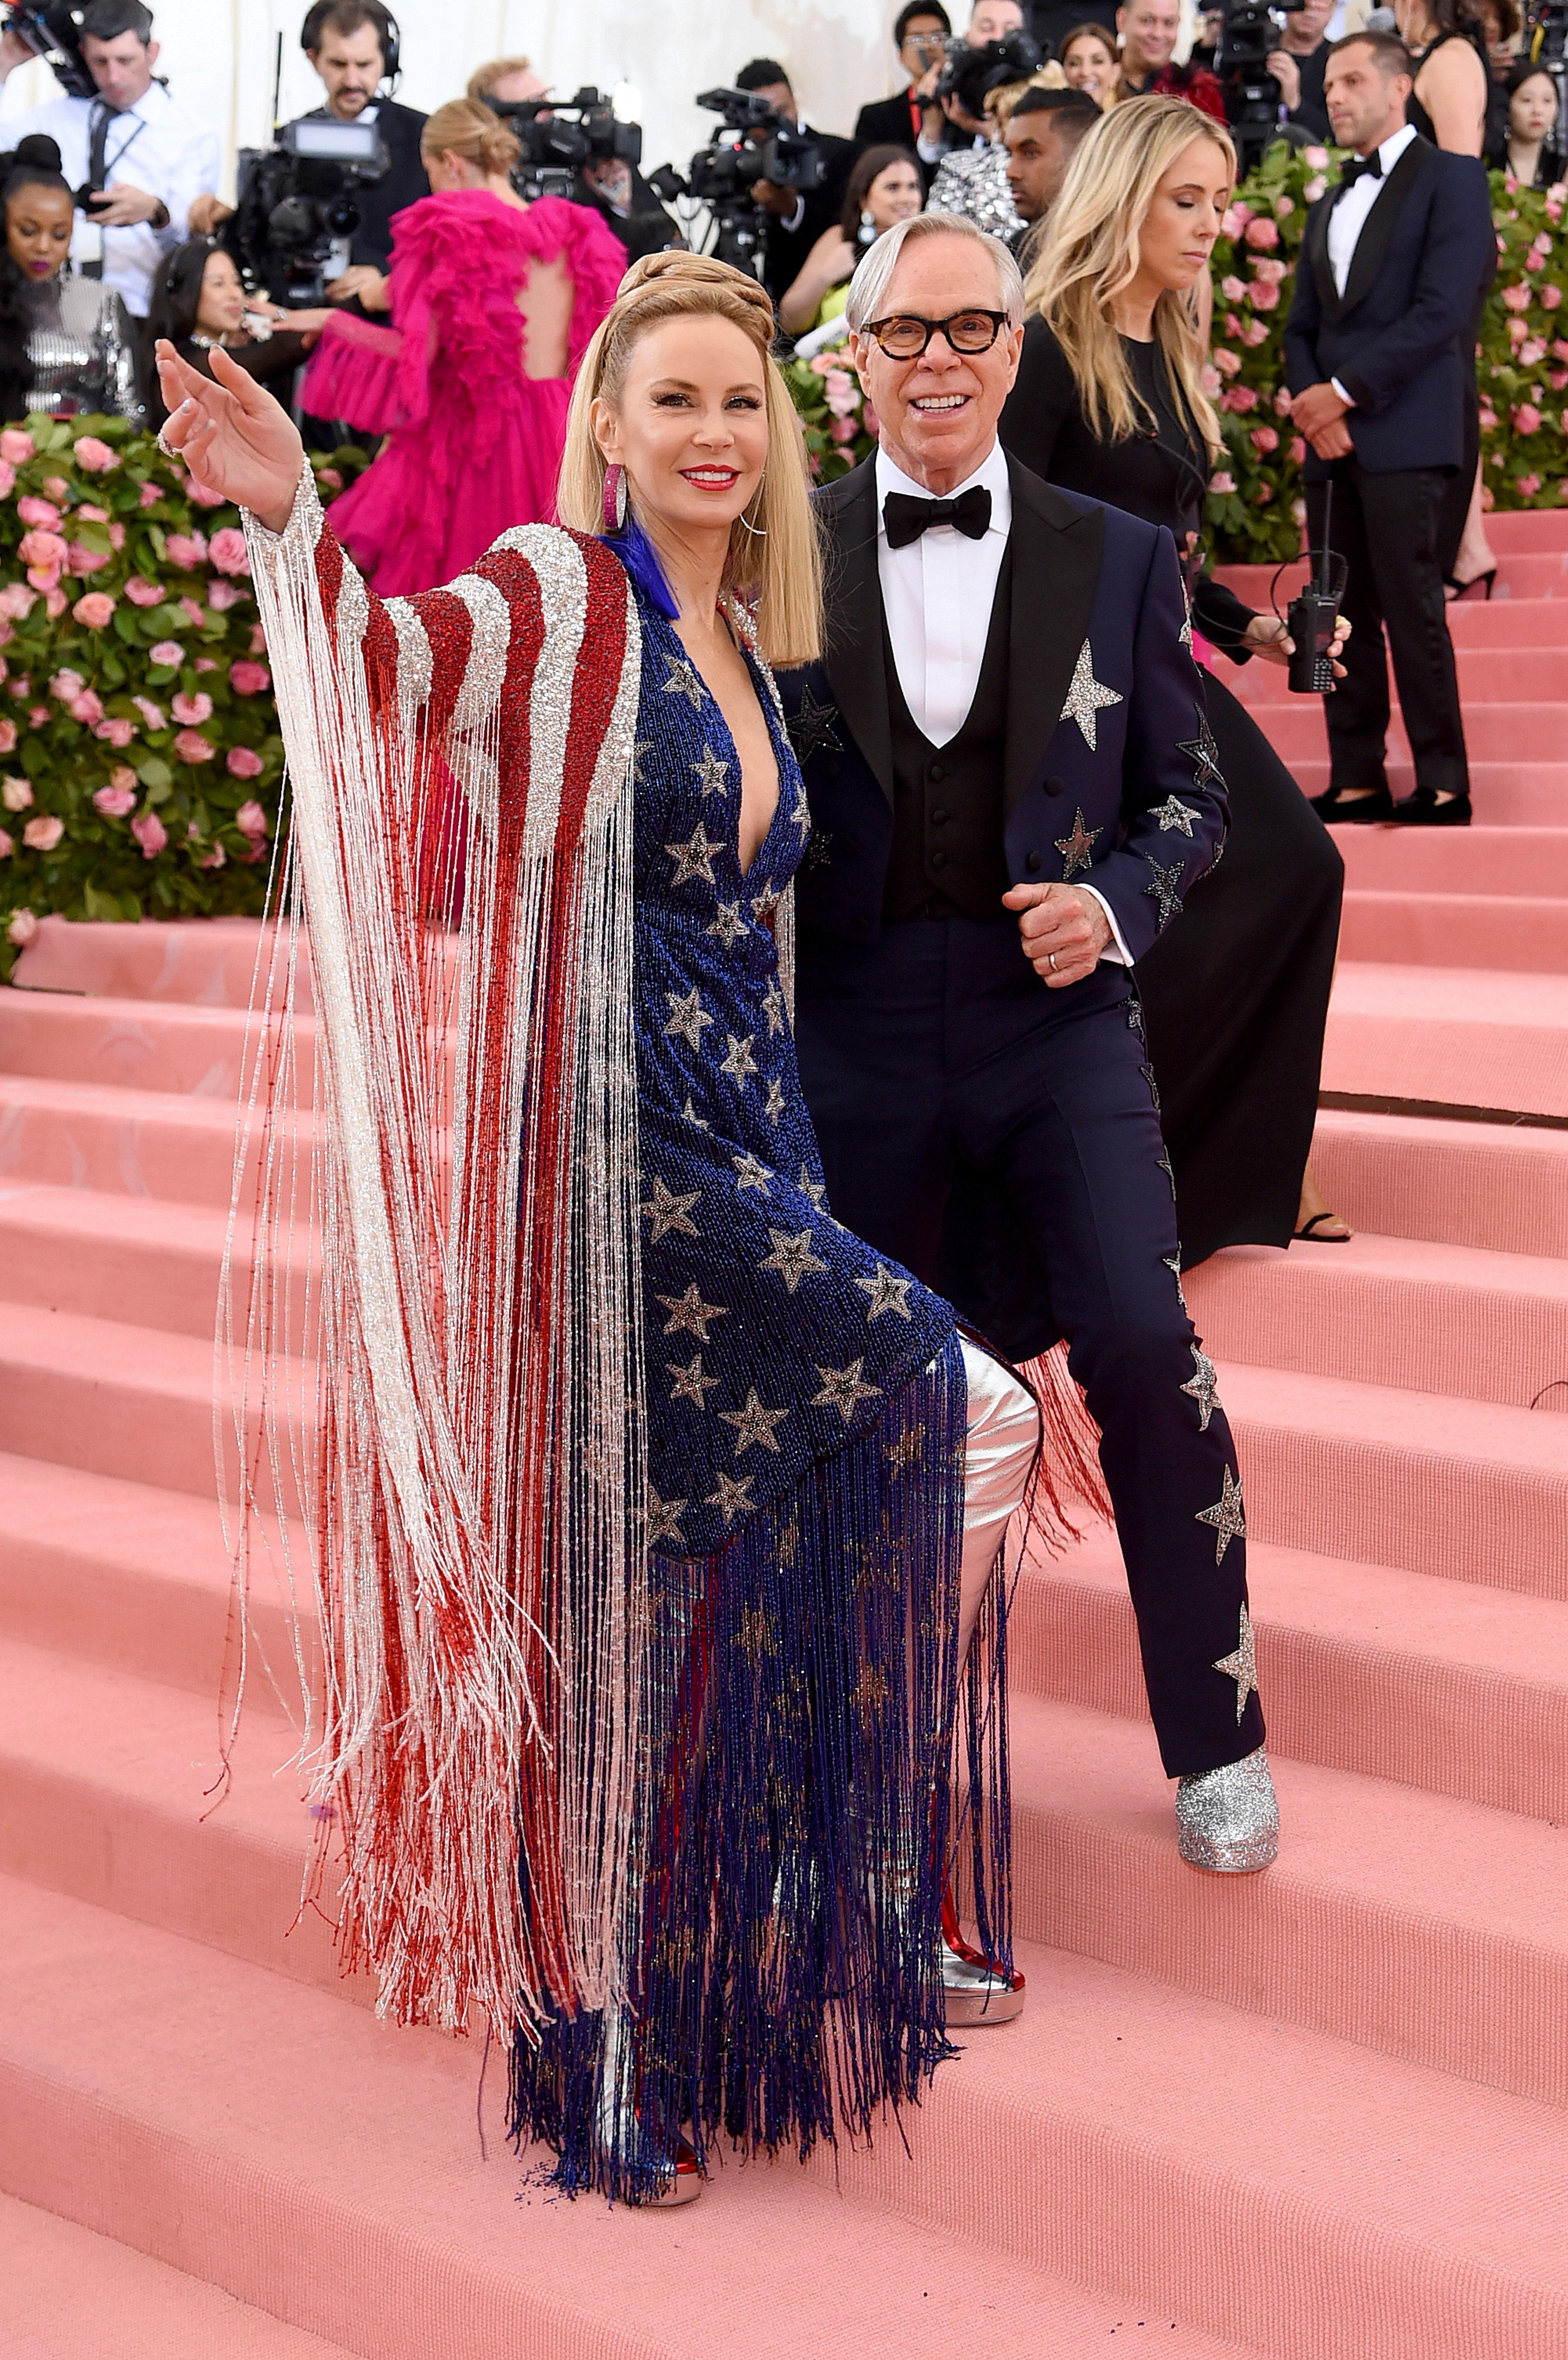 f27689fd51e9d Met Gala 2019 Red Carpet: See All the Celebrity Dresses, Outfits, and Looks  Here